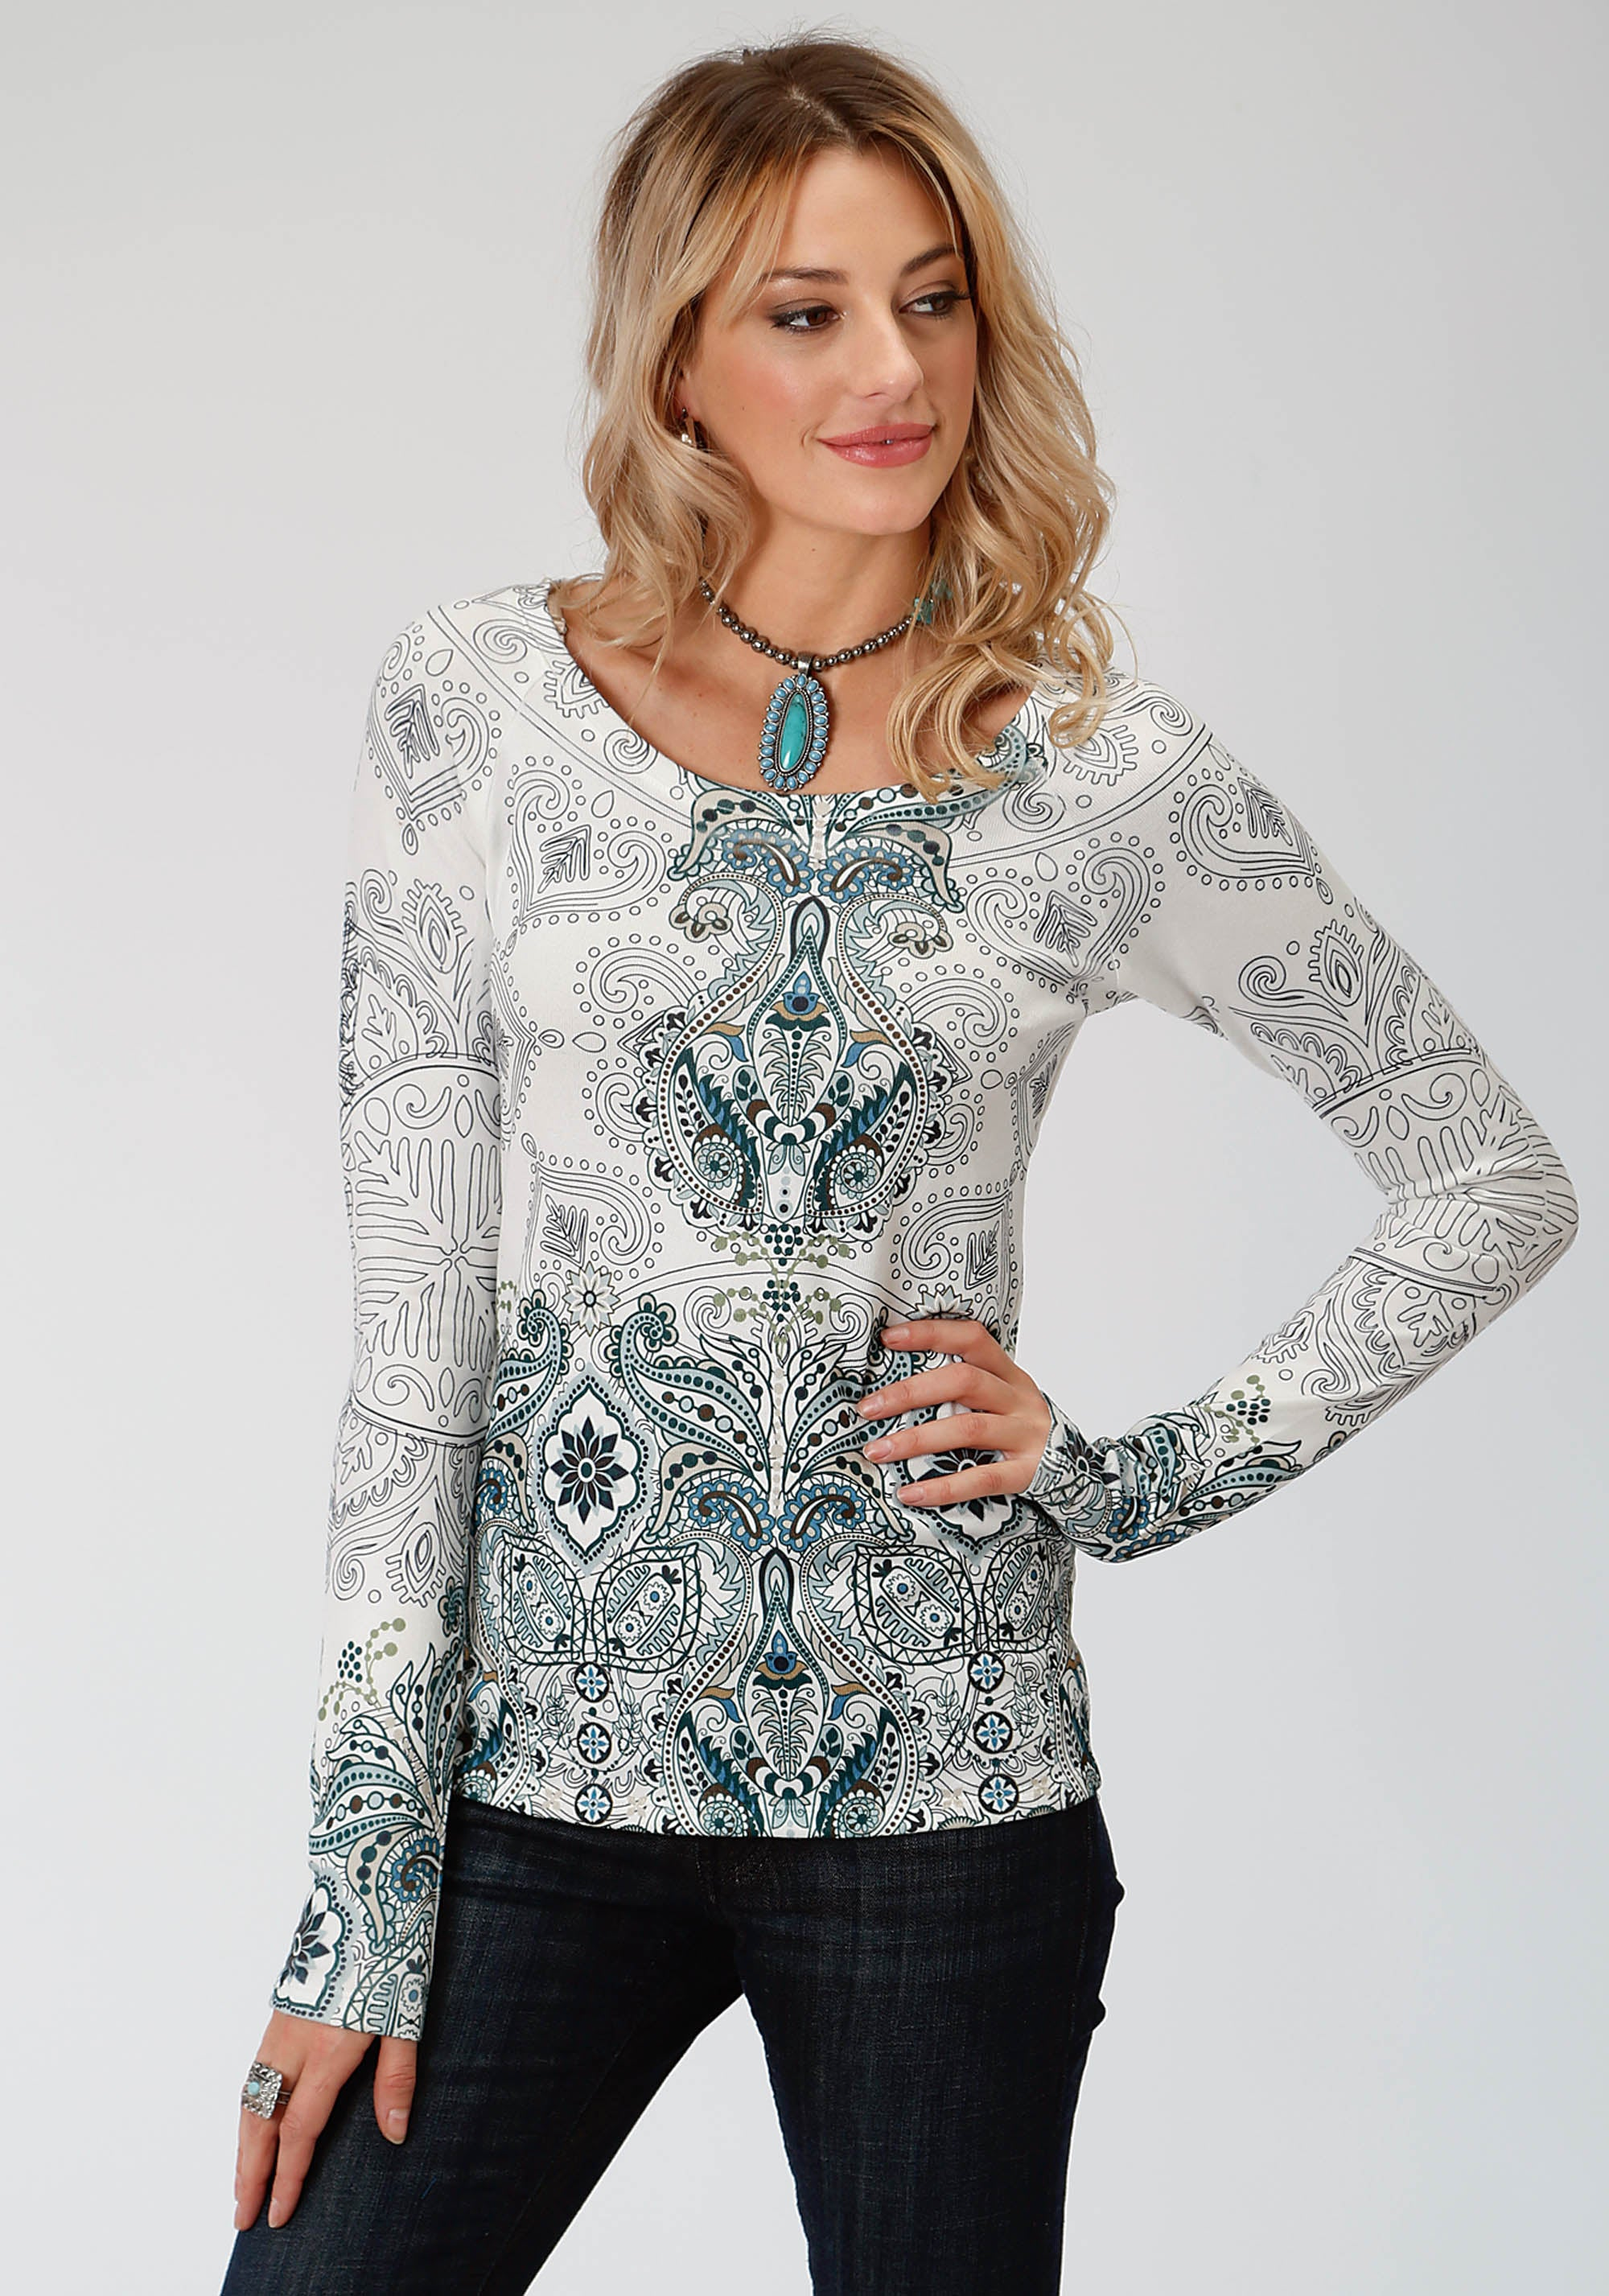 ROPER WOMENS WHITE 9505 SWEATER KNIT TOP STUDIO WEST COLLECTION- AUTUMN MEADOW LONG SLEEVE